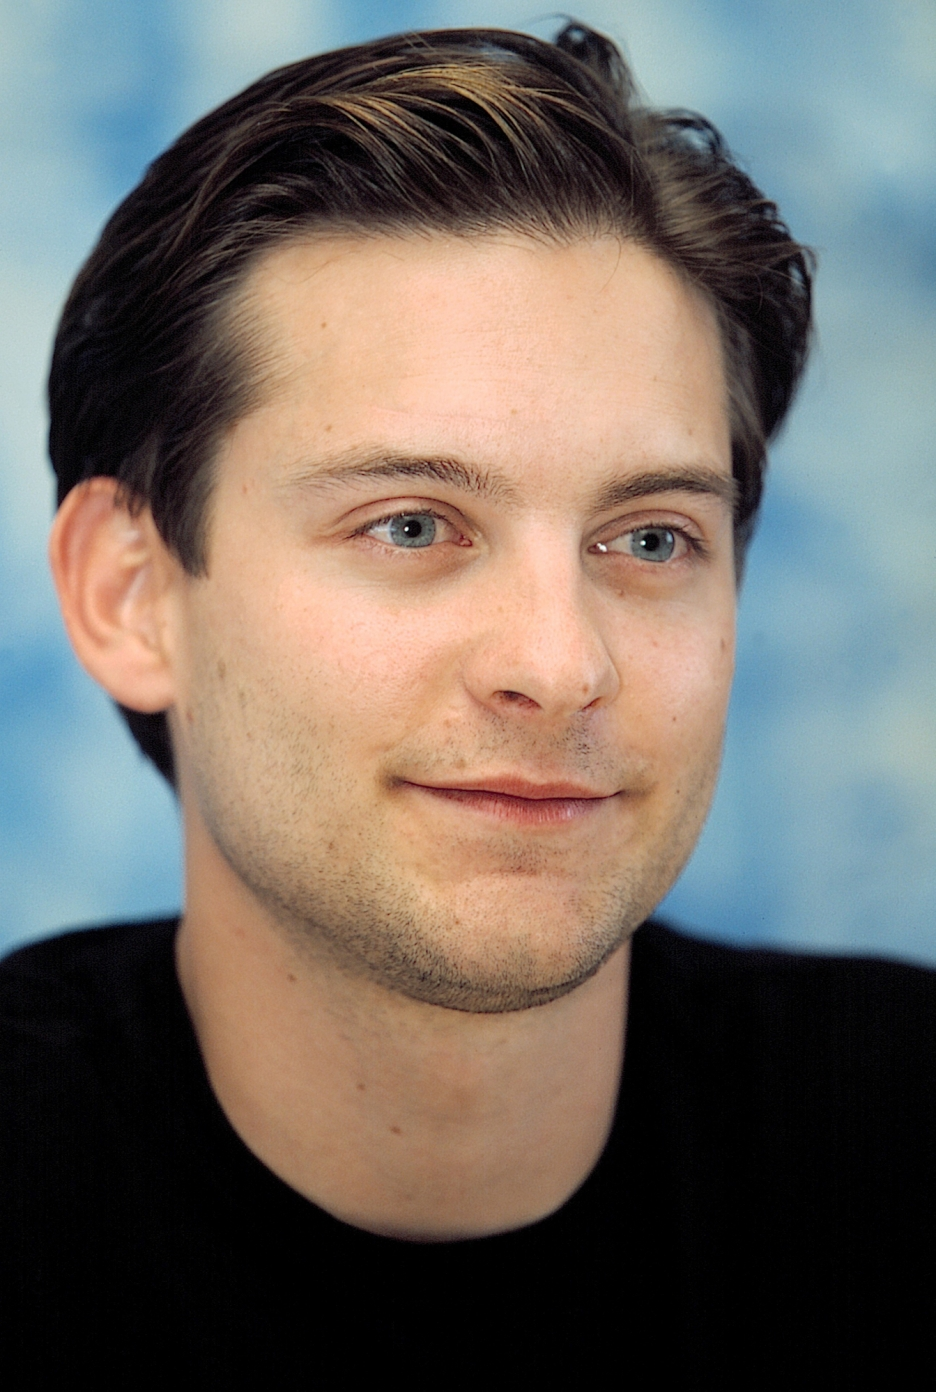 Tobey Maguire Is Going To Be On 'Jeopardy' - IMDb